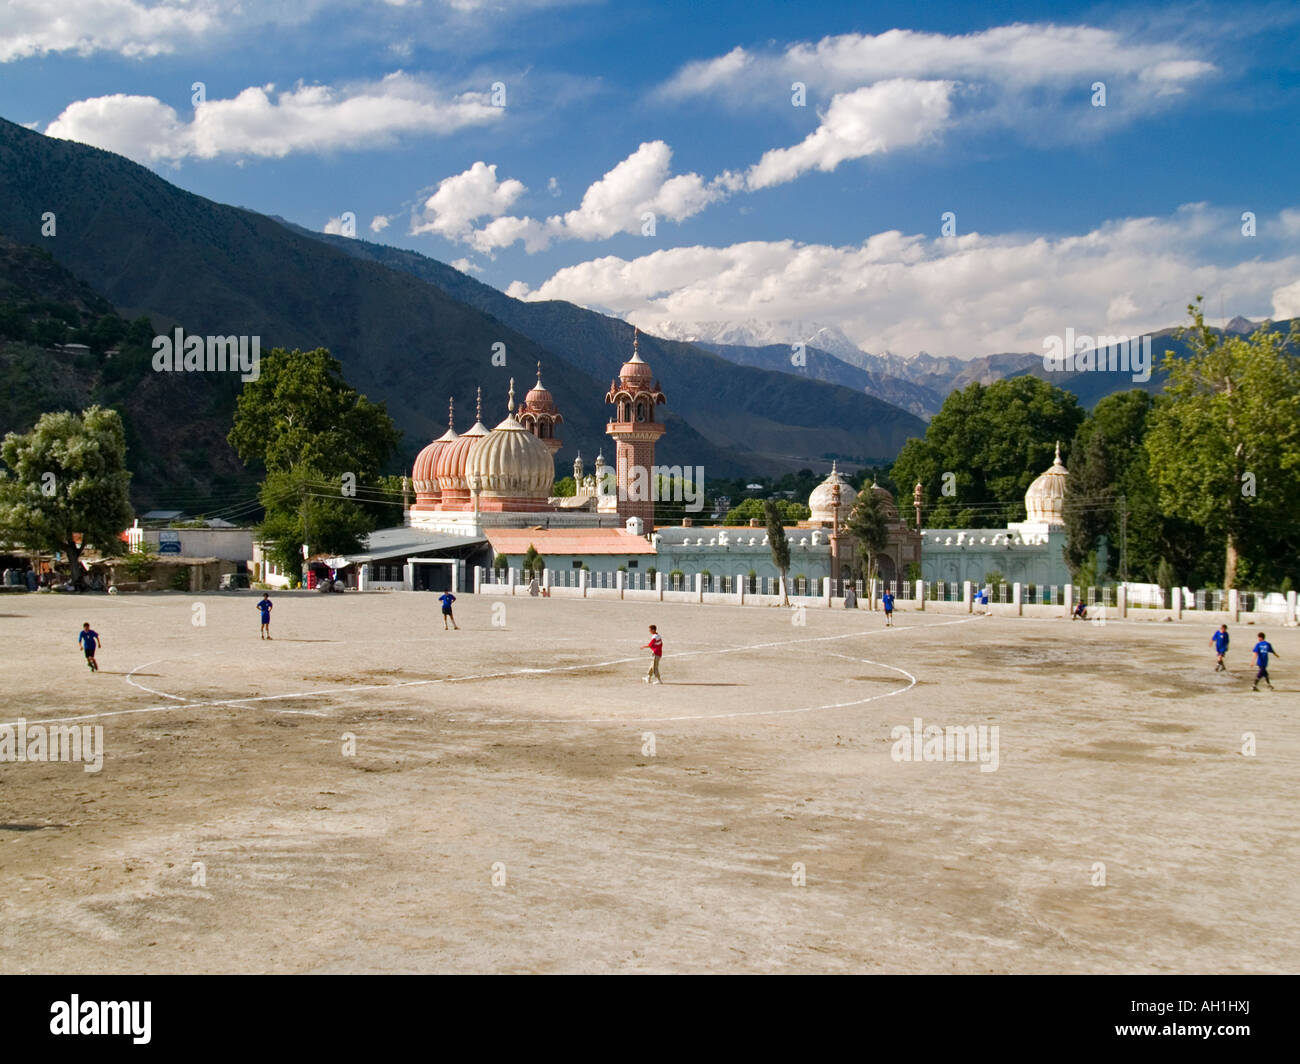 soccer game in front of the Shahi Mosque Chitral Pakistan with Trich Mir peak in the Hindu Kush rising behind - Stock Image